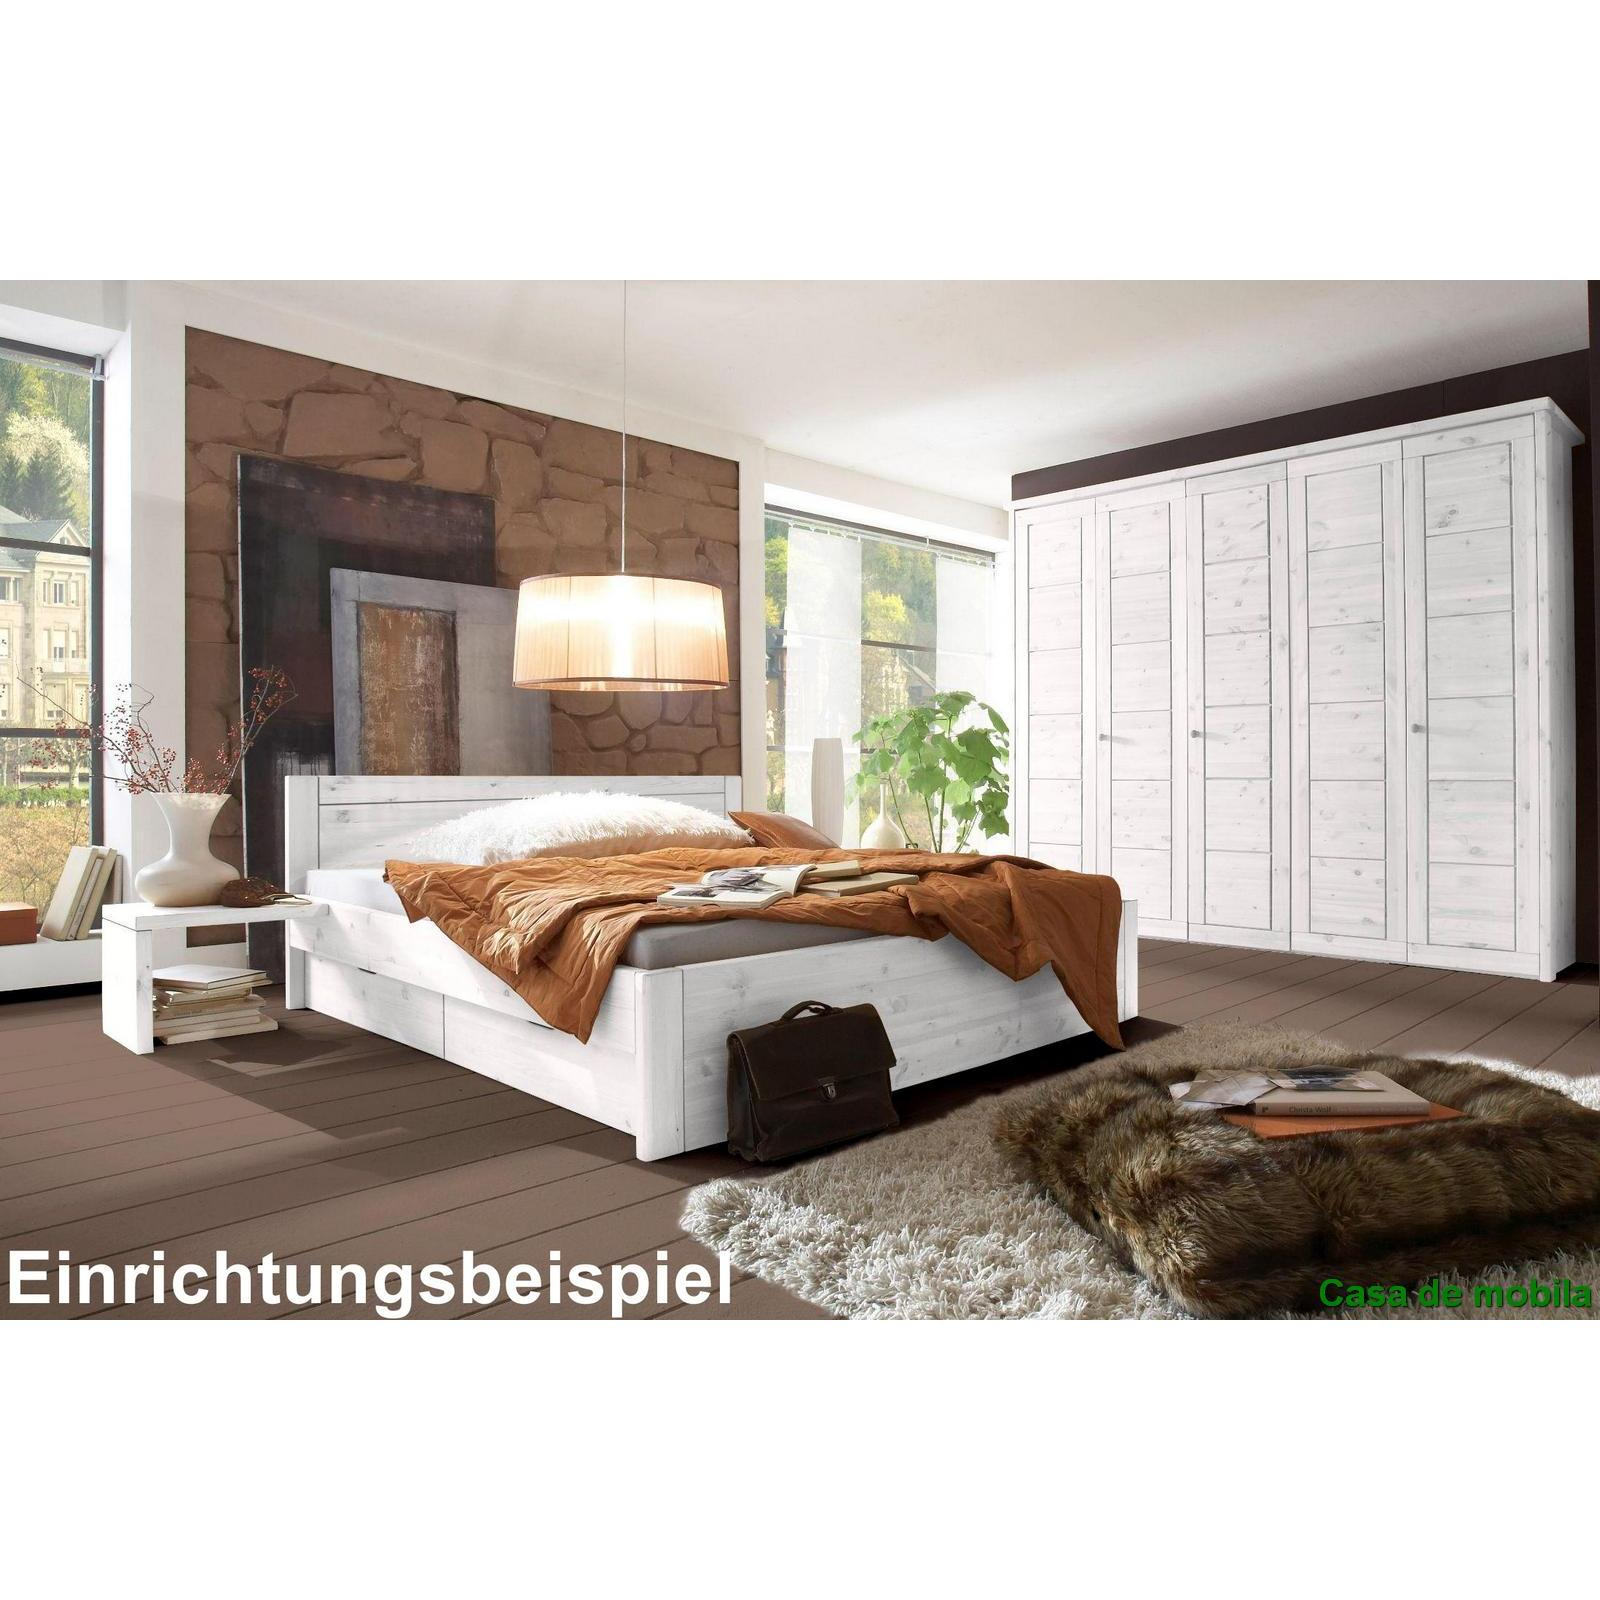 massivholz kleiderschrank kiefer wei lasiert rauna 6 t rig mit spiegelt ren und kasetten front. Black Bedroom Furniture Sets. Home Design Ideas